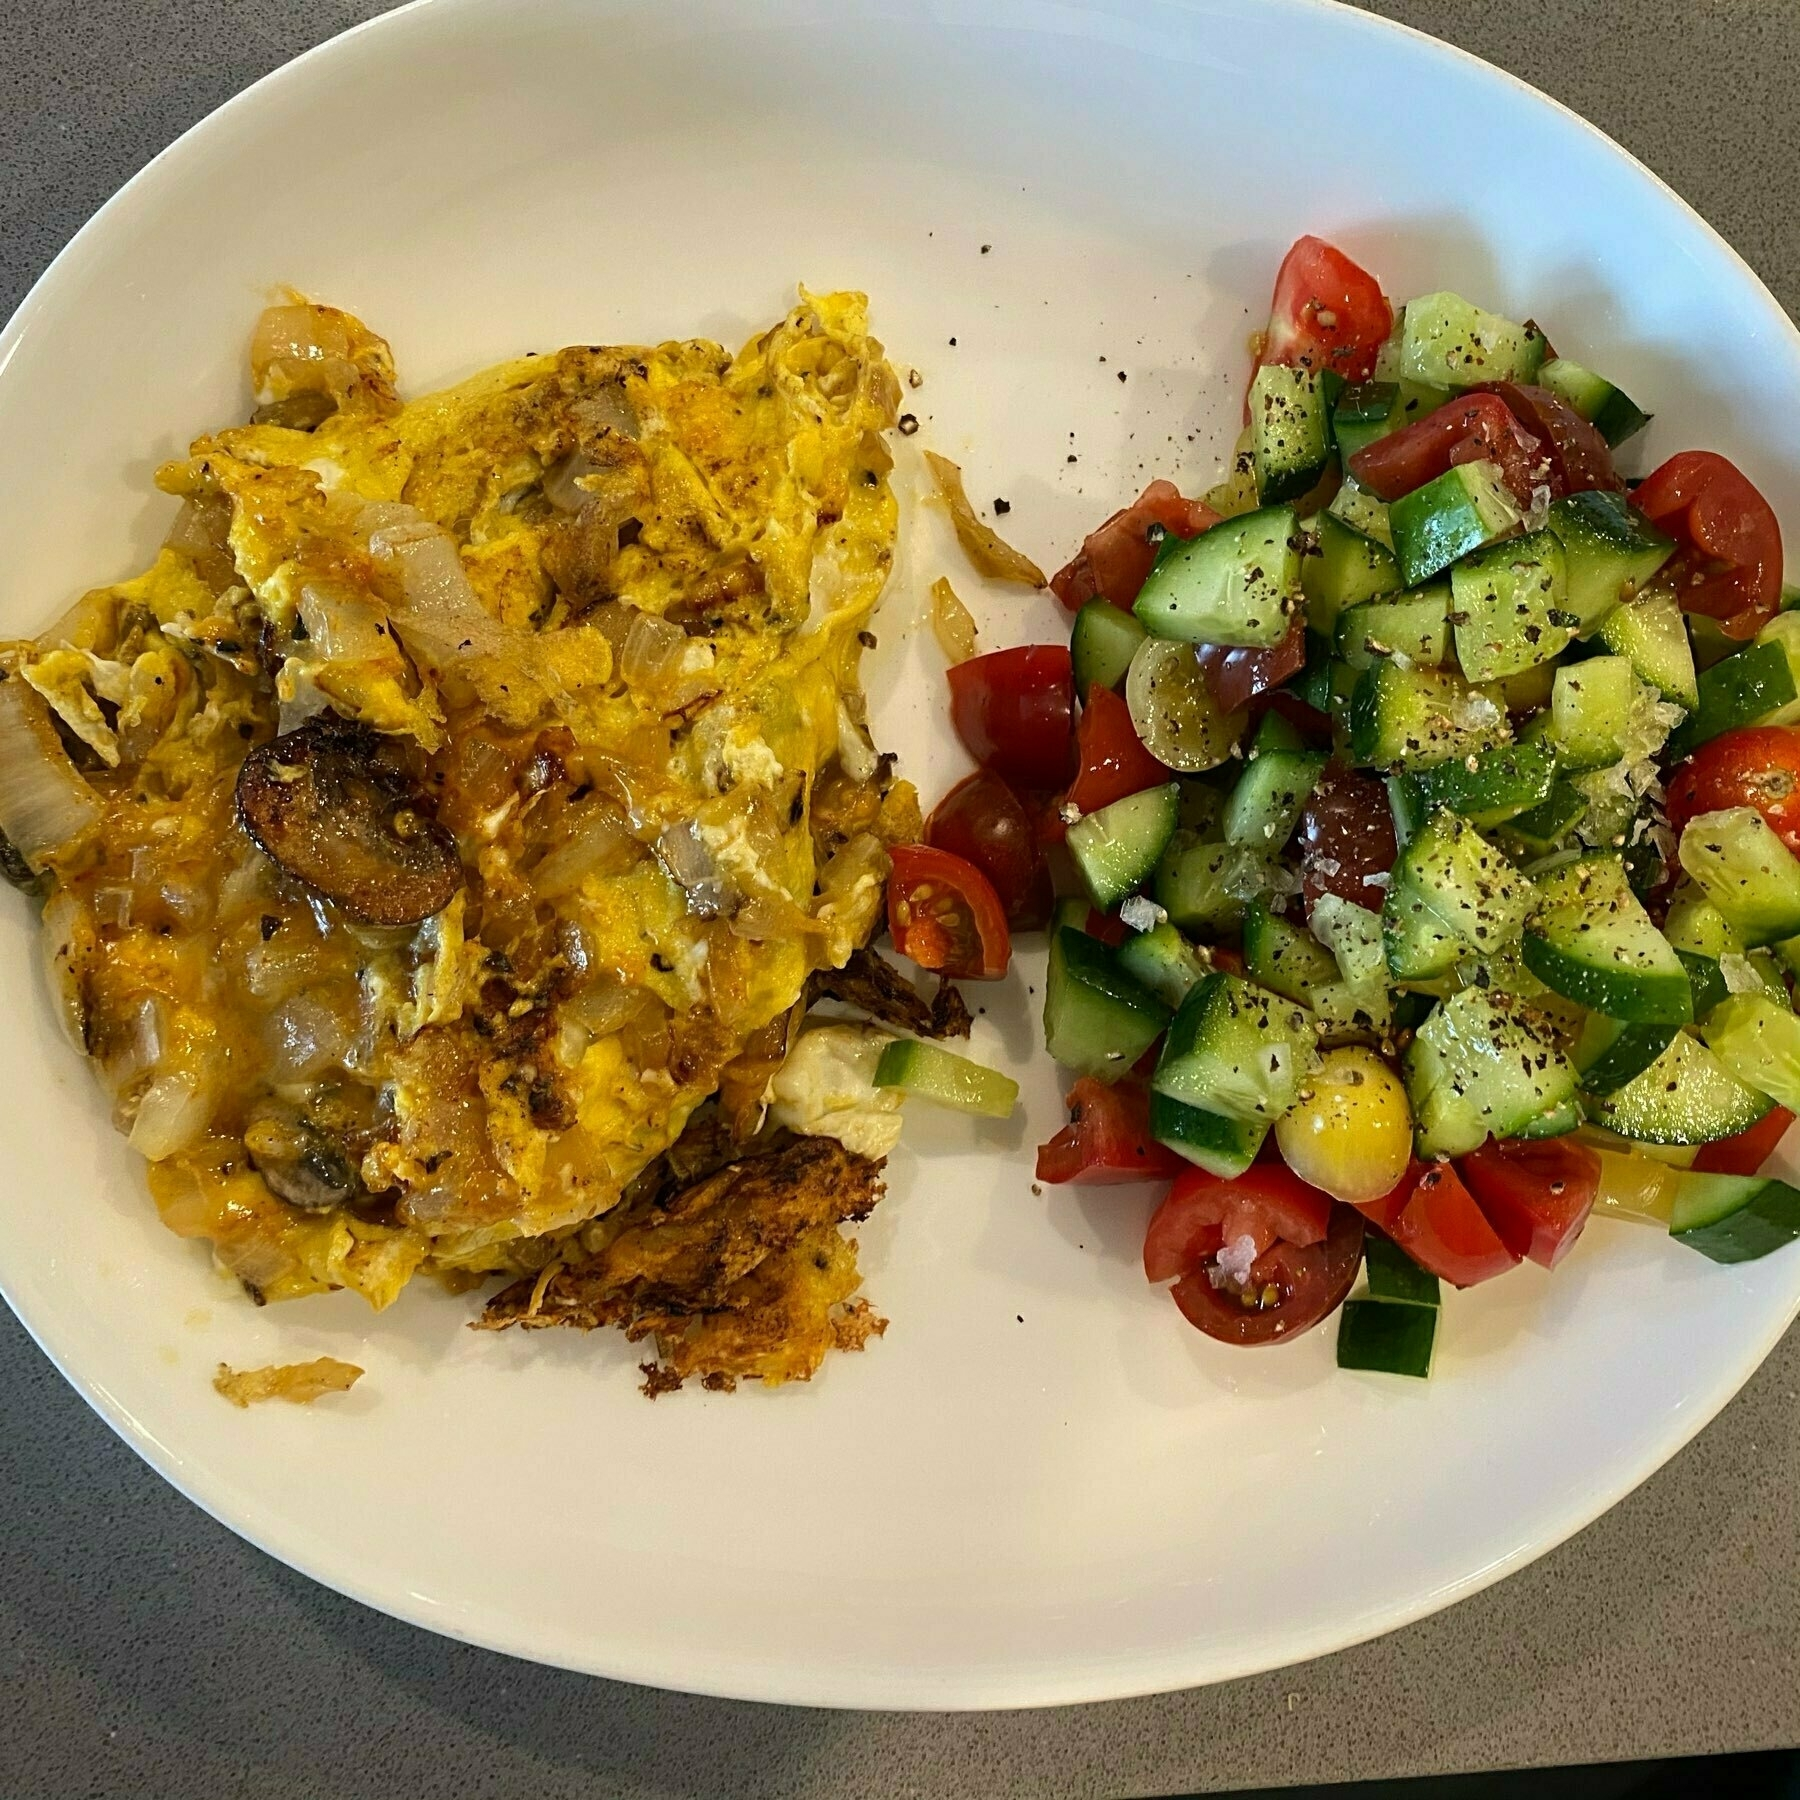 Left, egg cheese, mushroom, and onion scramble. Right, well-seasoned cucumber and tomato salad.